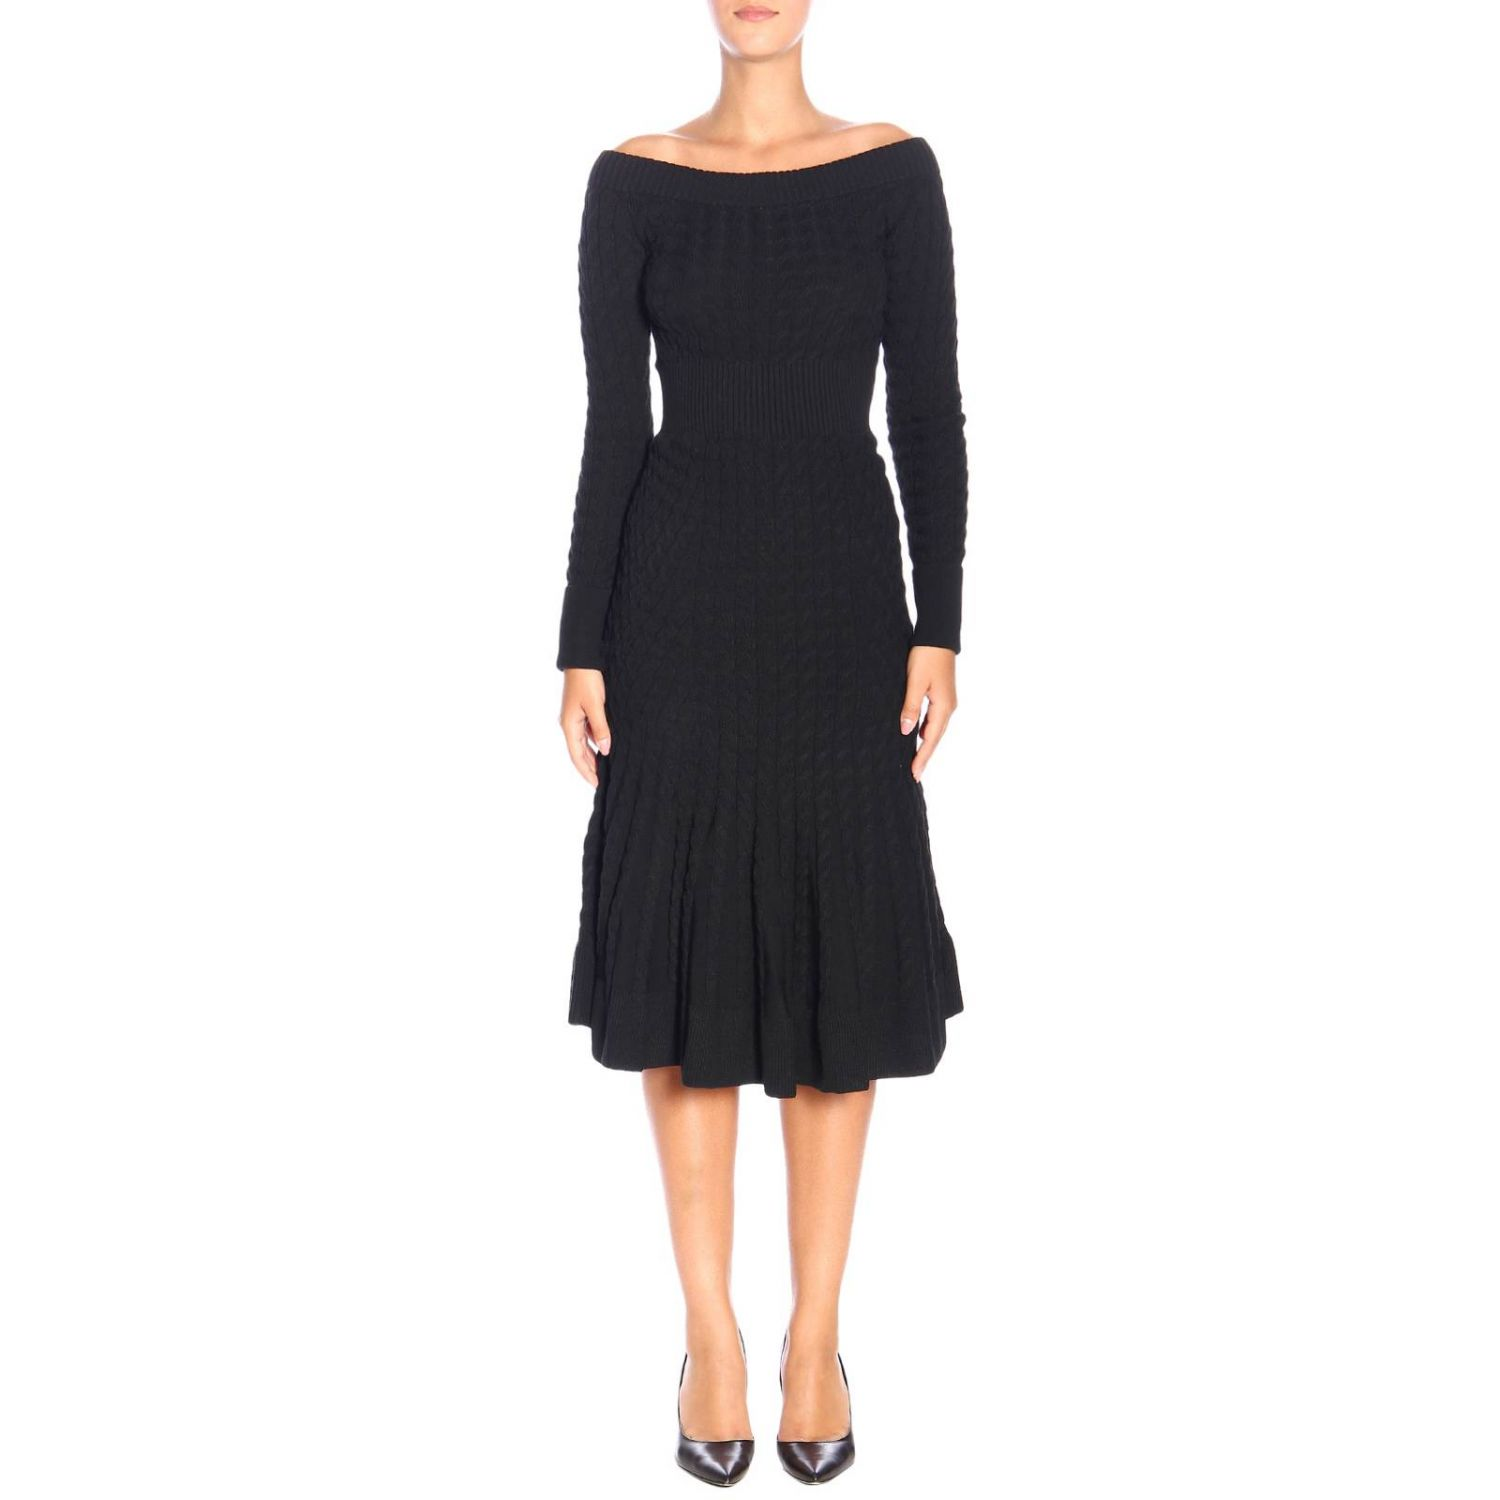 Dress Alexander Mcqueen: Dress women Alexander Mcqueen black 1